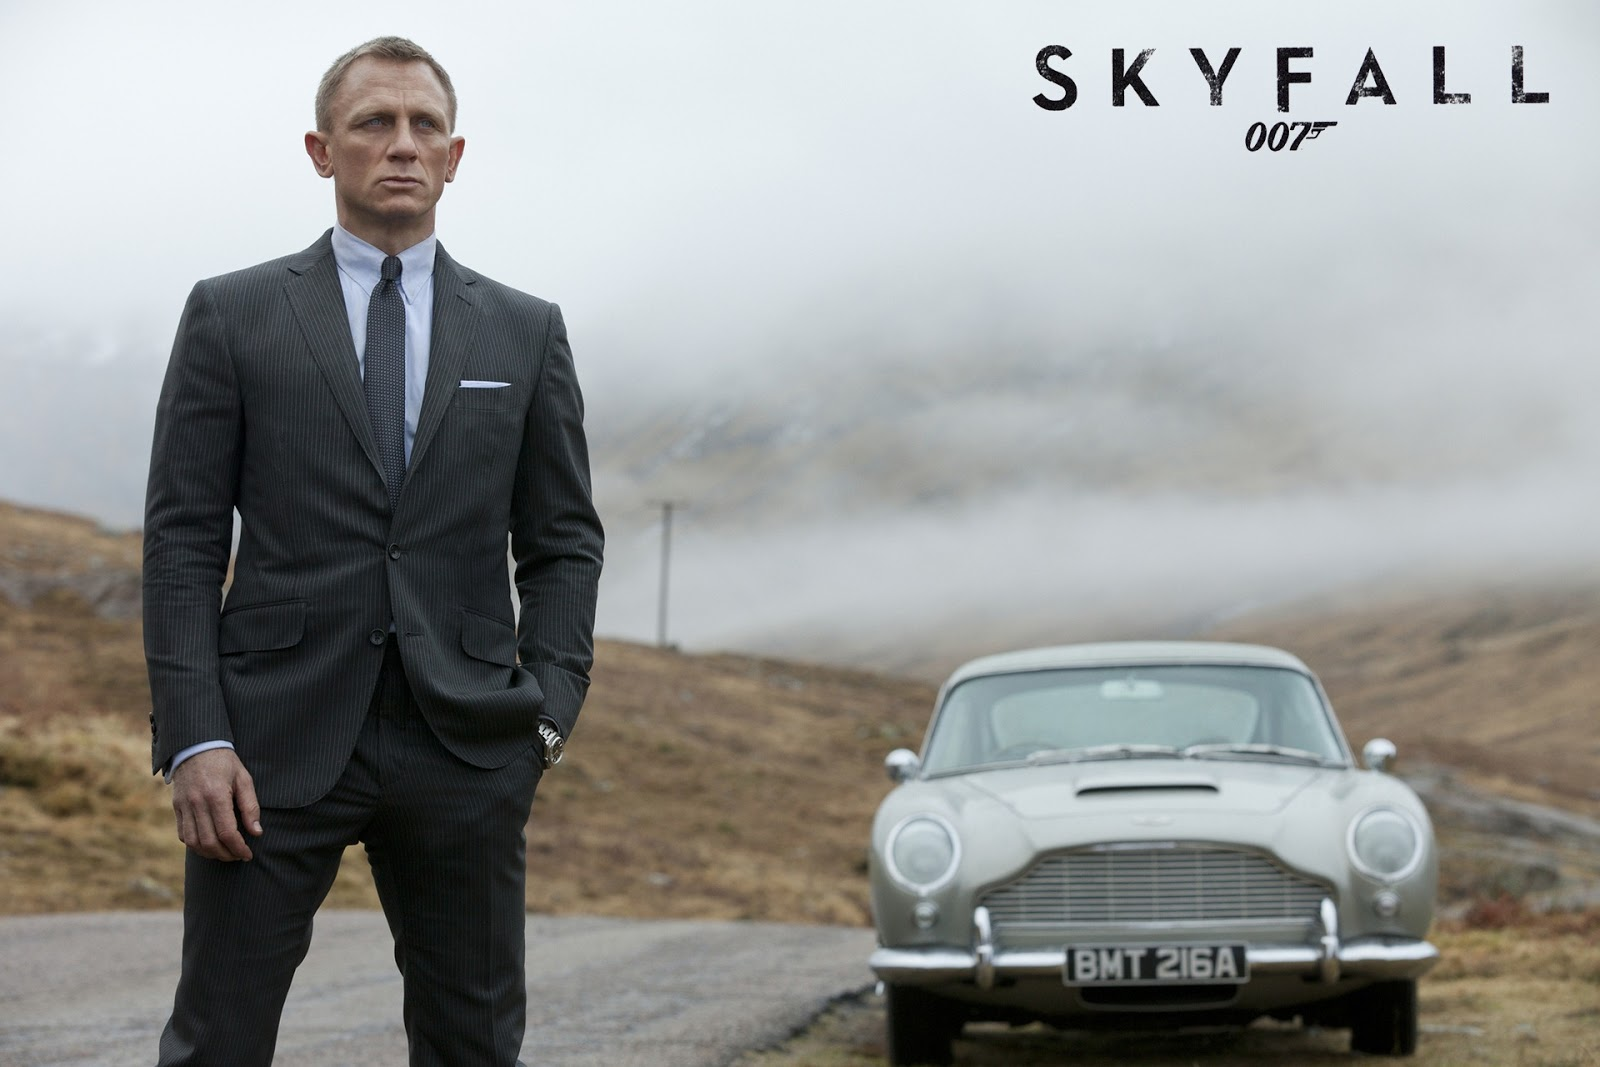 HD Wallpapers for iPhone 5 - James Bond 007 Skyfall Wallpapers | Free ...